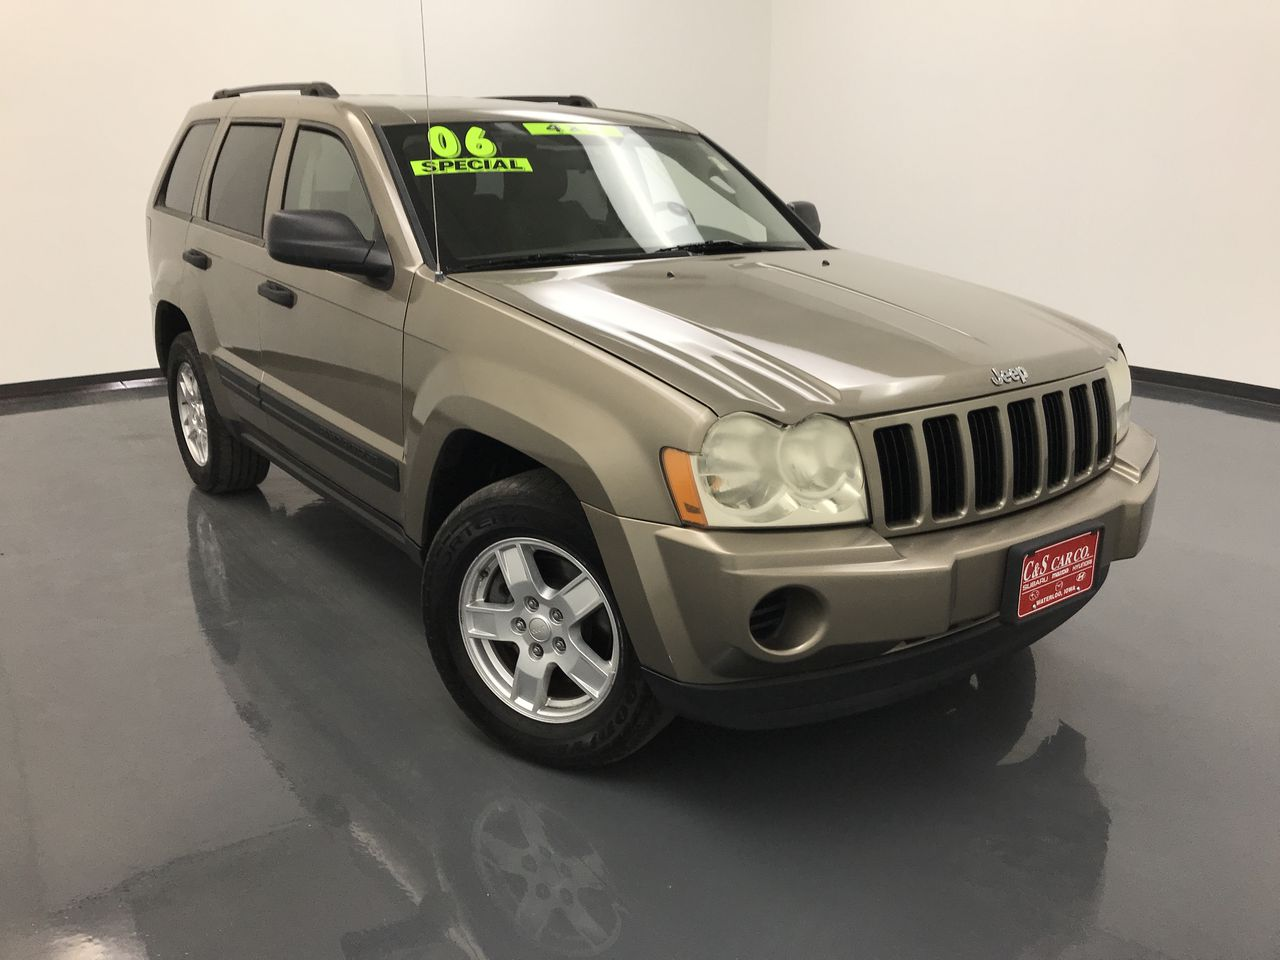 cherokee jeep 2006 grand laredo 4wd confirm availability showing company